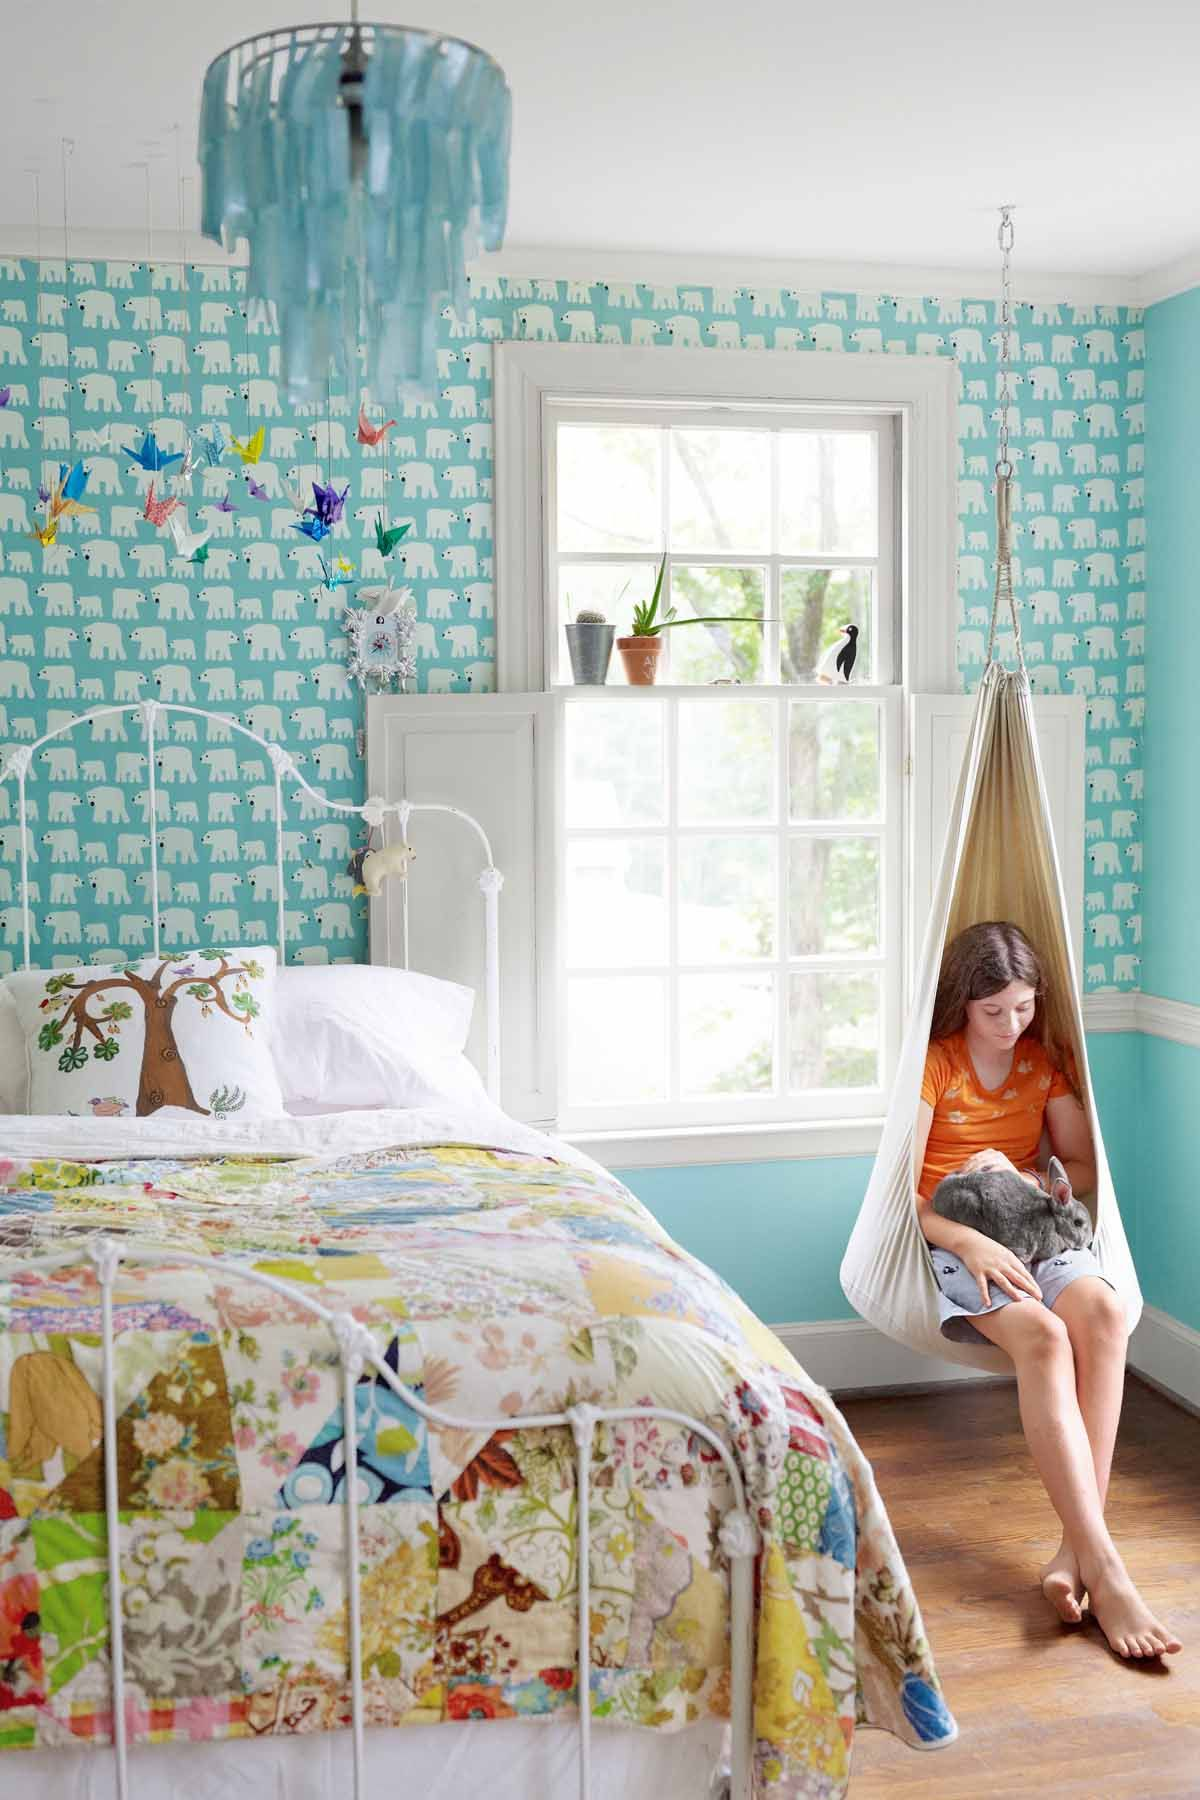 31+ Bedroom Decor Ideas For Girls